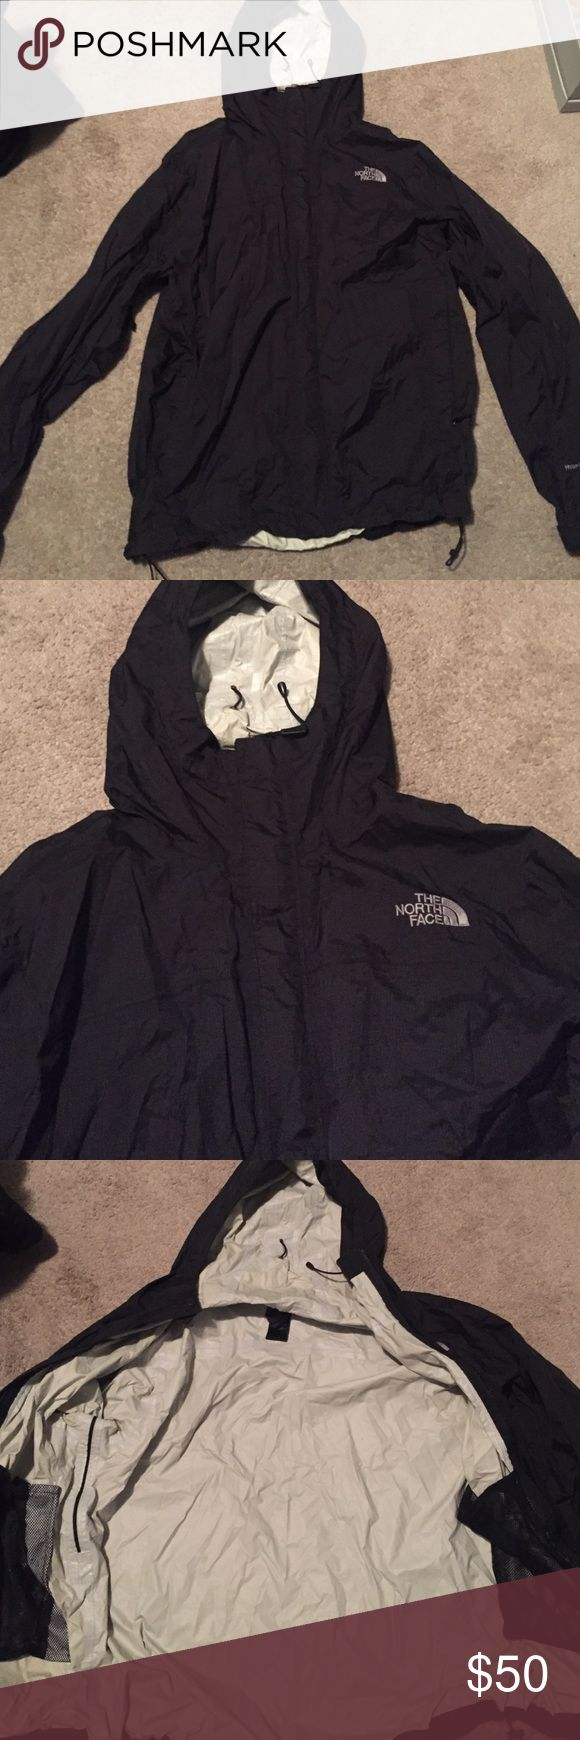 The North Face men's winderbreaker/ rain jacket Amazing condition. Size large. Good for in the rain and on those cold windy days The North Face Jackets & Coats Windbreakers